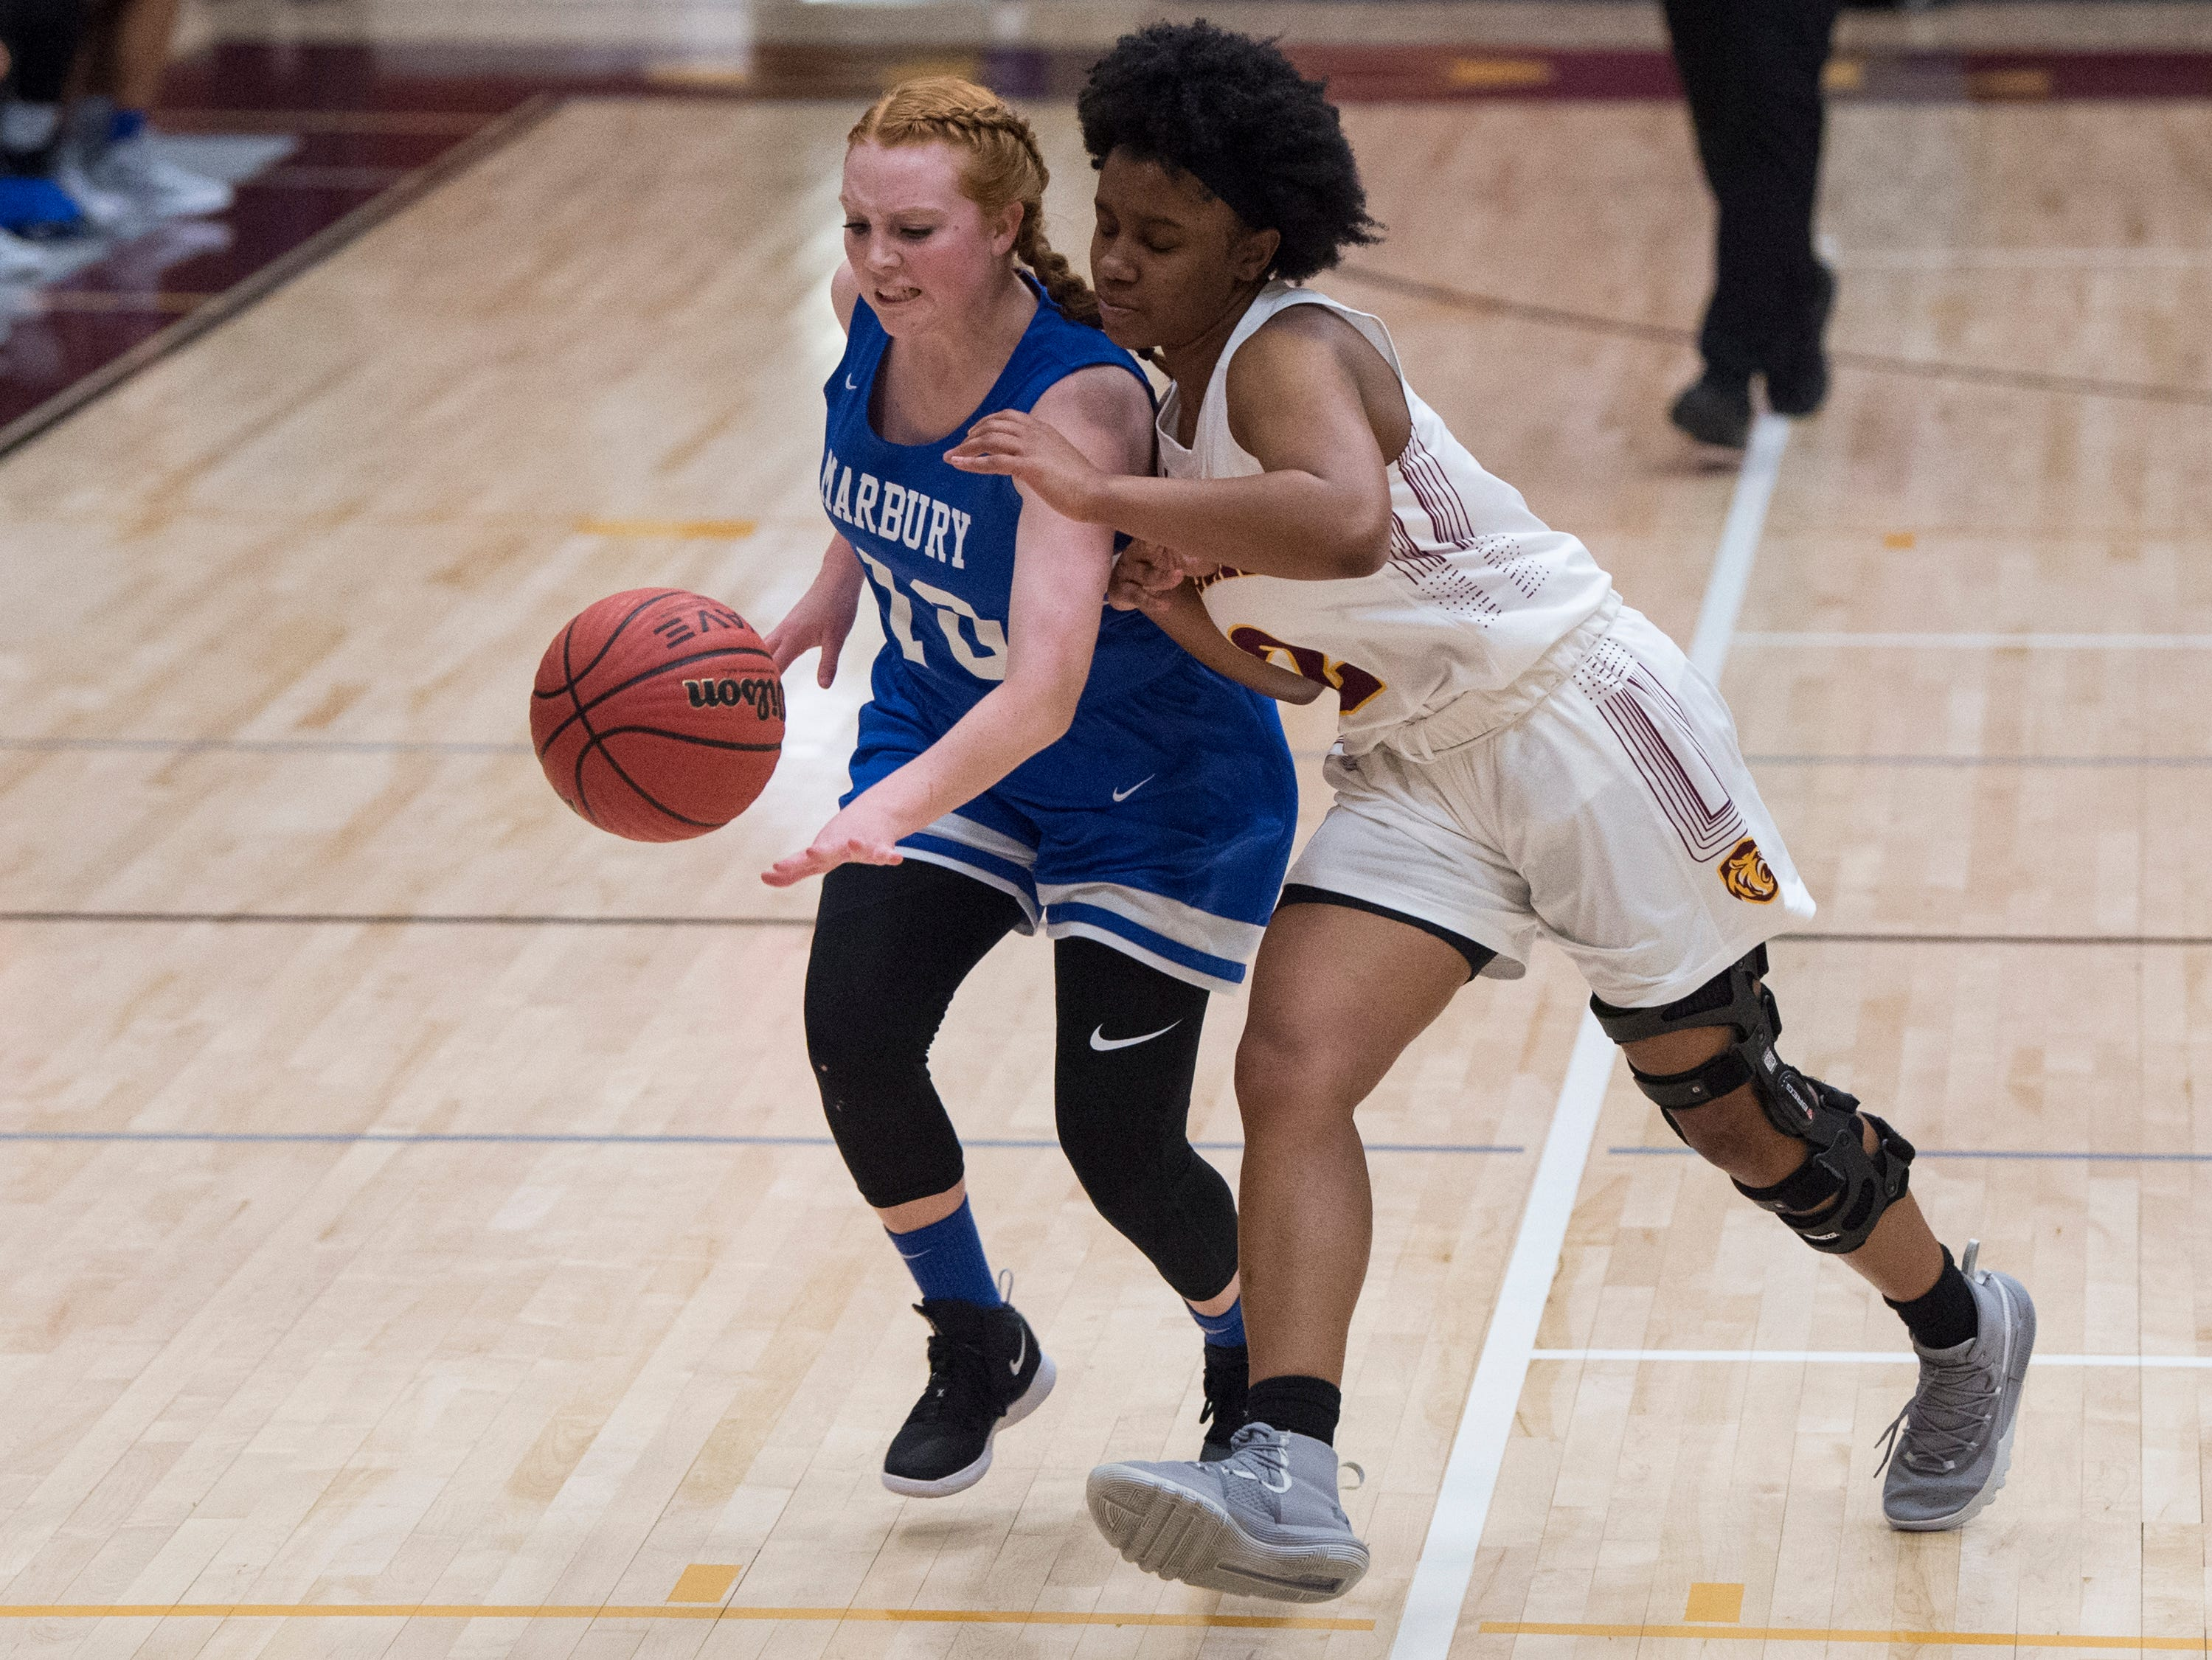 Marbury's Mary Bixler (10) steals the ball from LAMP's Aariel Johnson (2) at LAMP high school in Montgomery, Ala., on Thursday, Jan. 10, 2019.